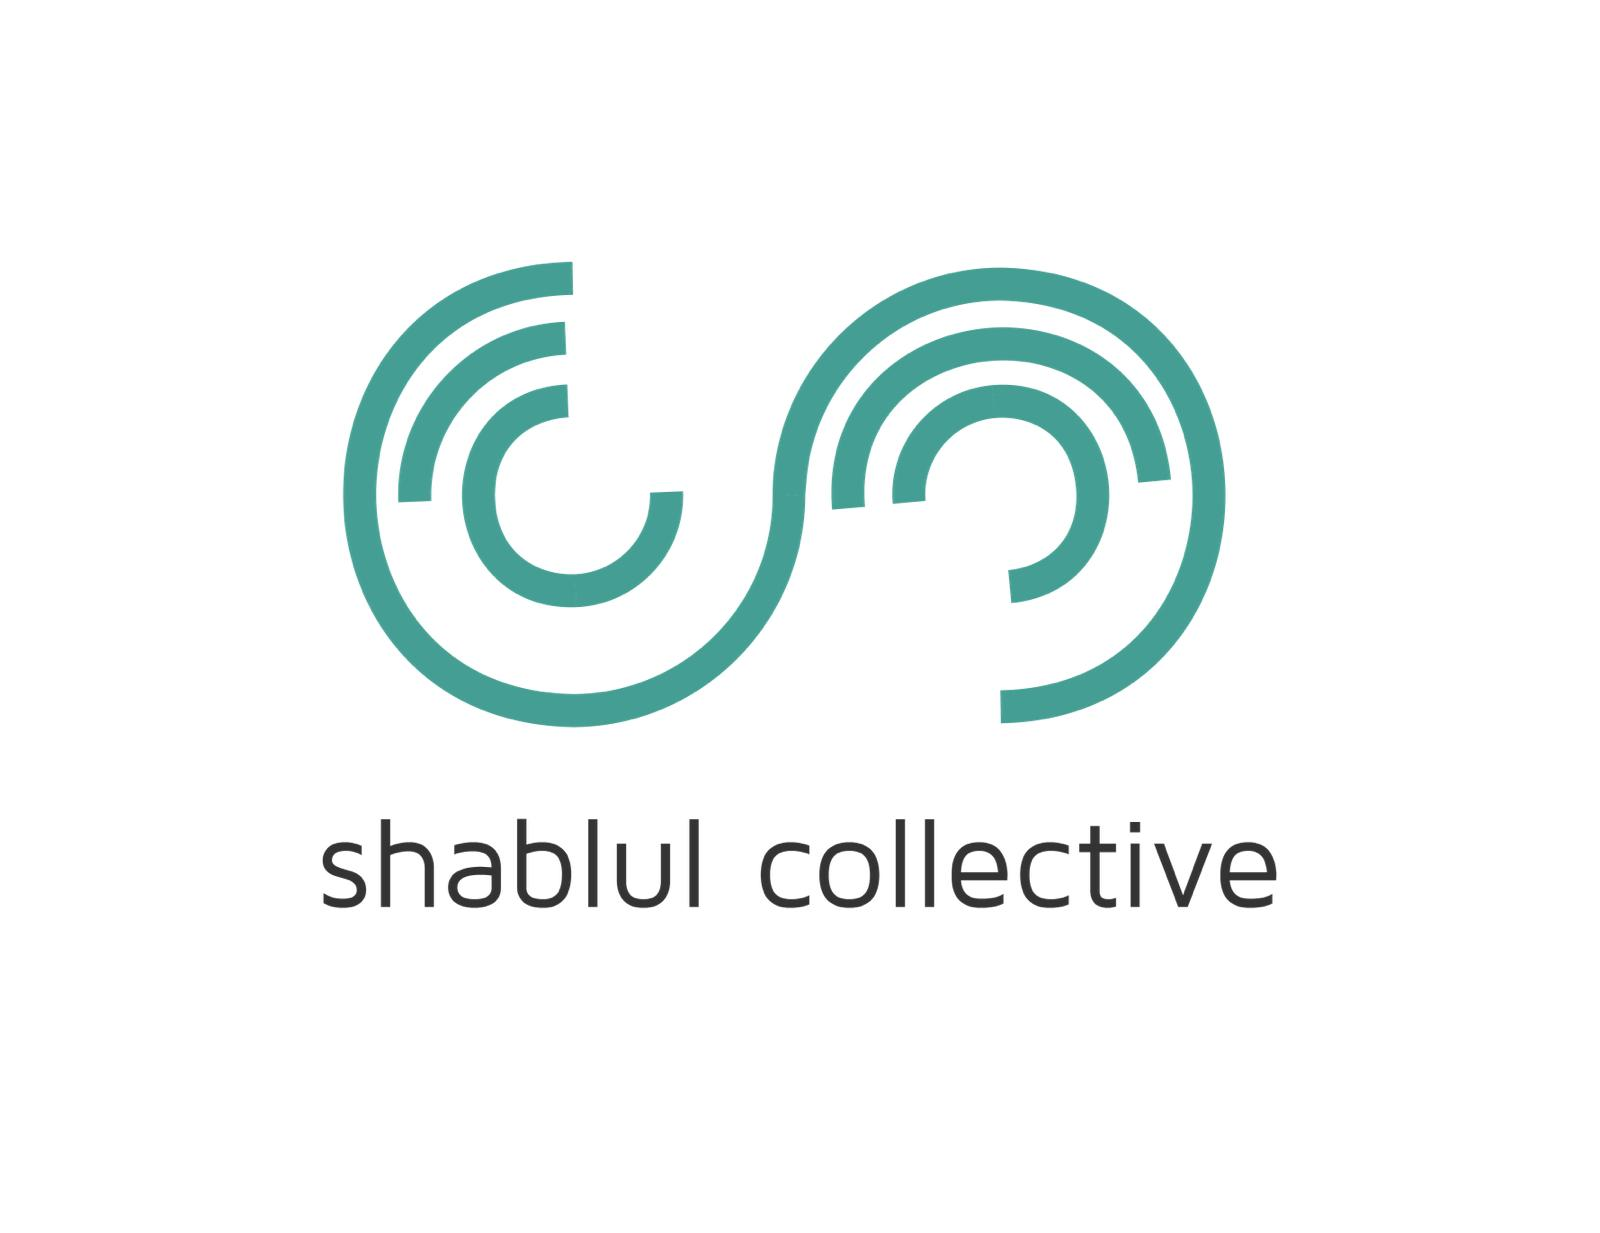 SHABLUL COLLECTIVE